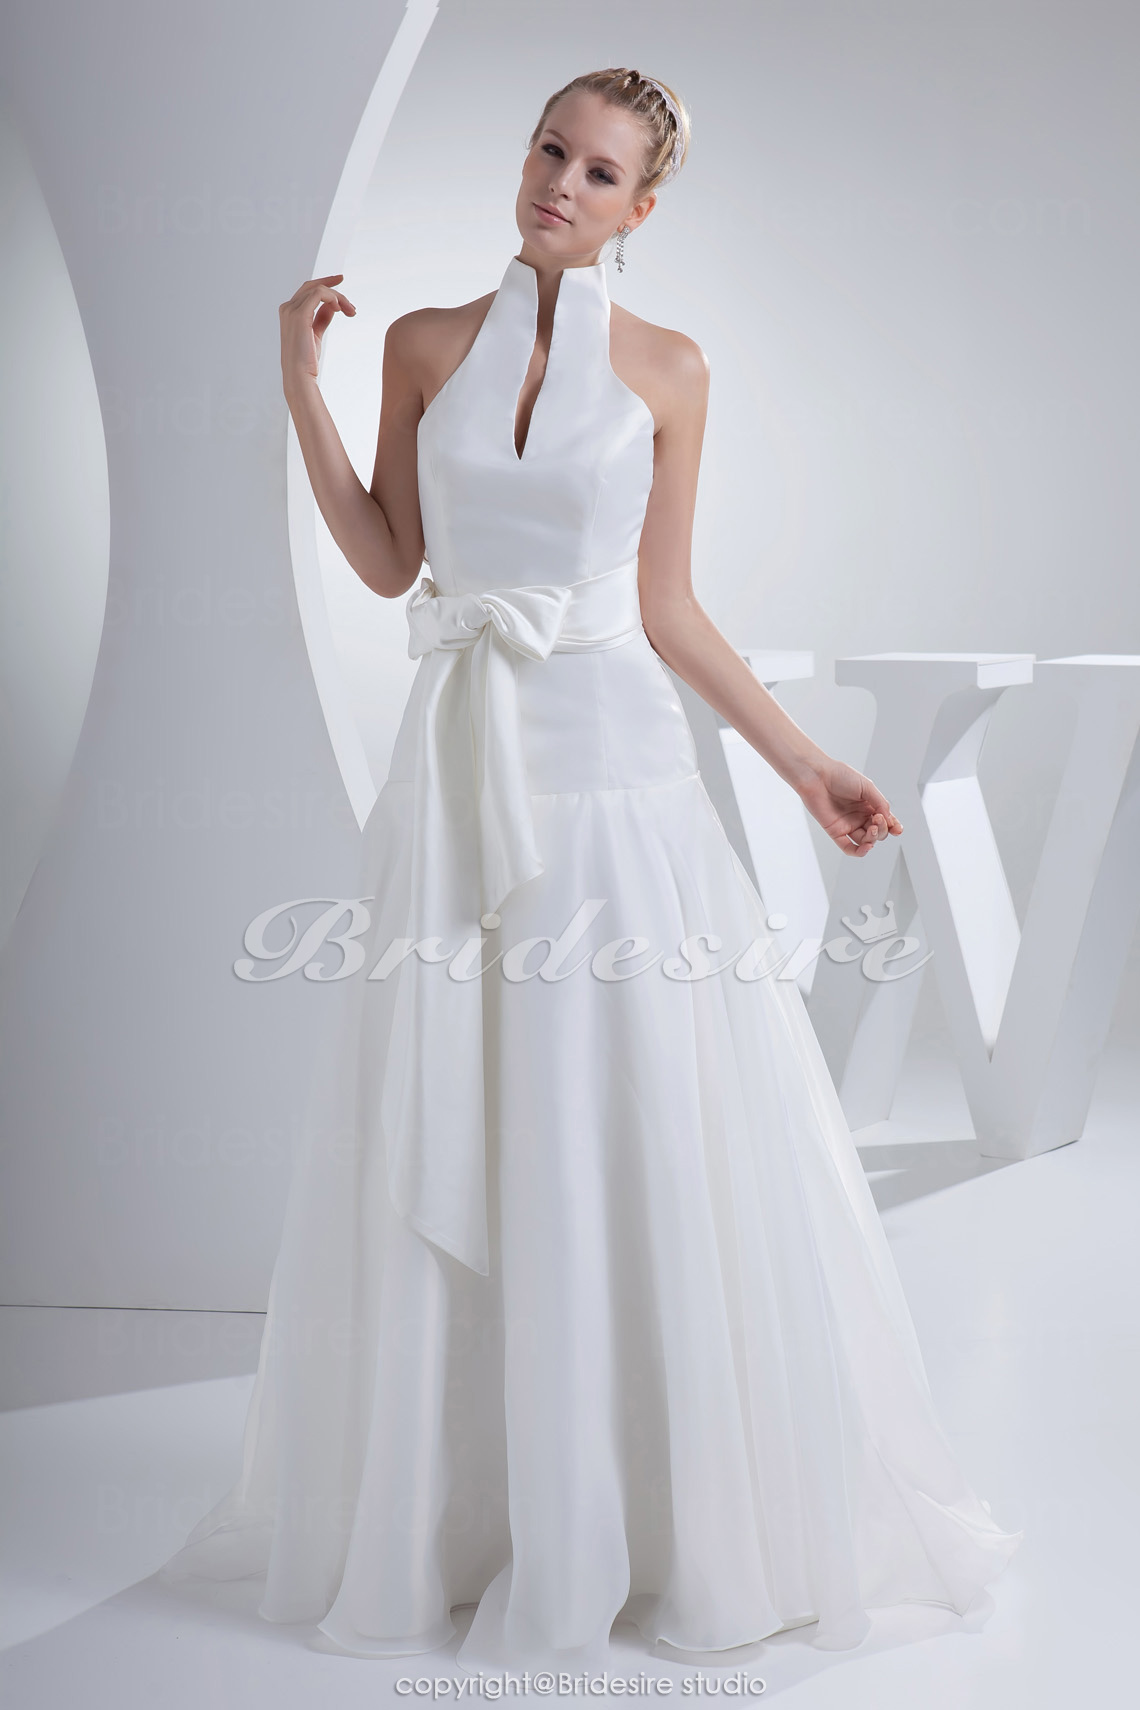 A-line Halter Floor-length Sleeveless Satin Organza Wedding Dress